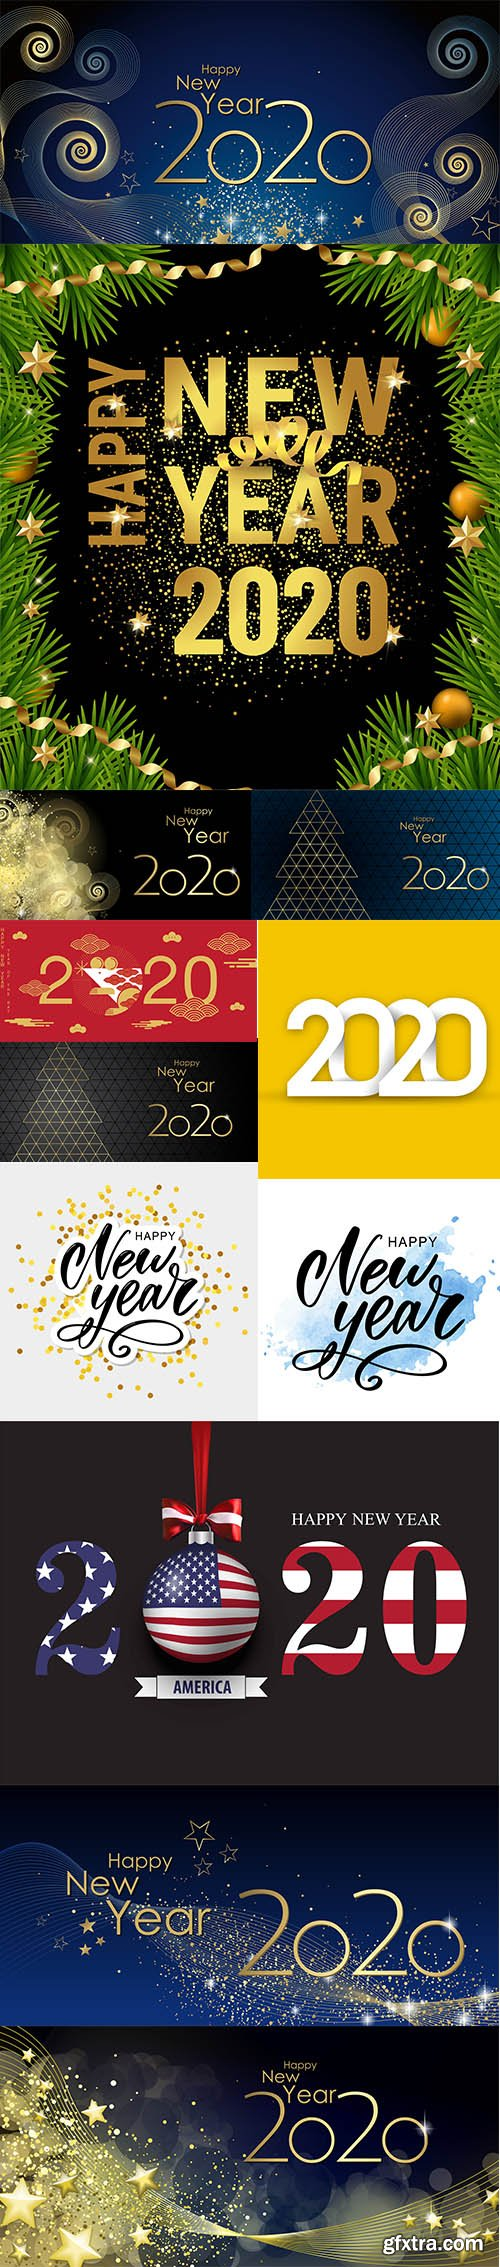 Merry Christmas and Happy New Year 2020 Illustrations Set 4